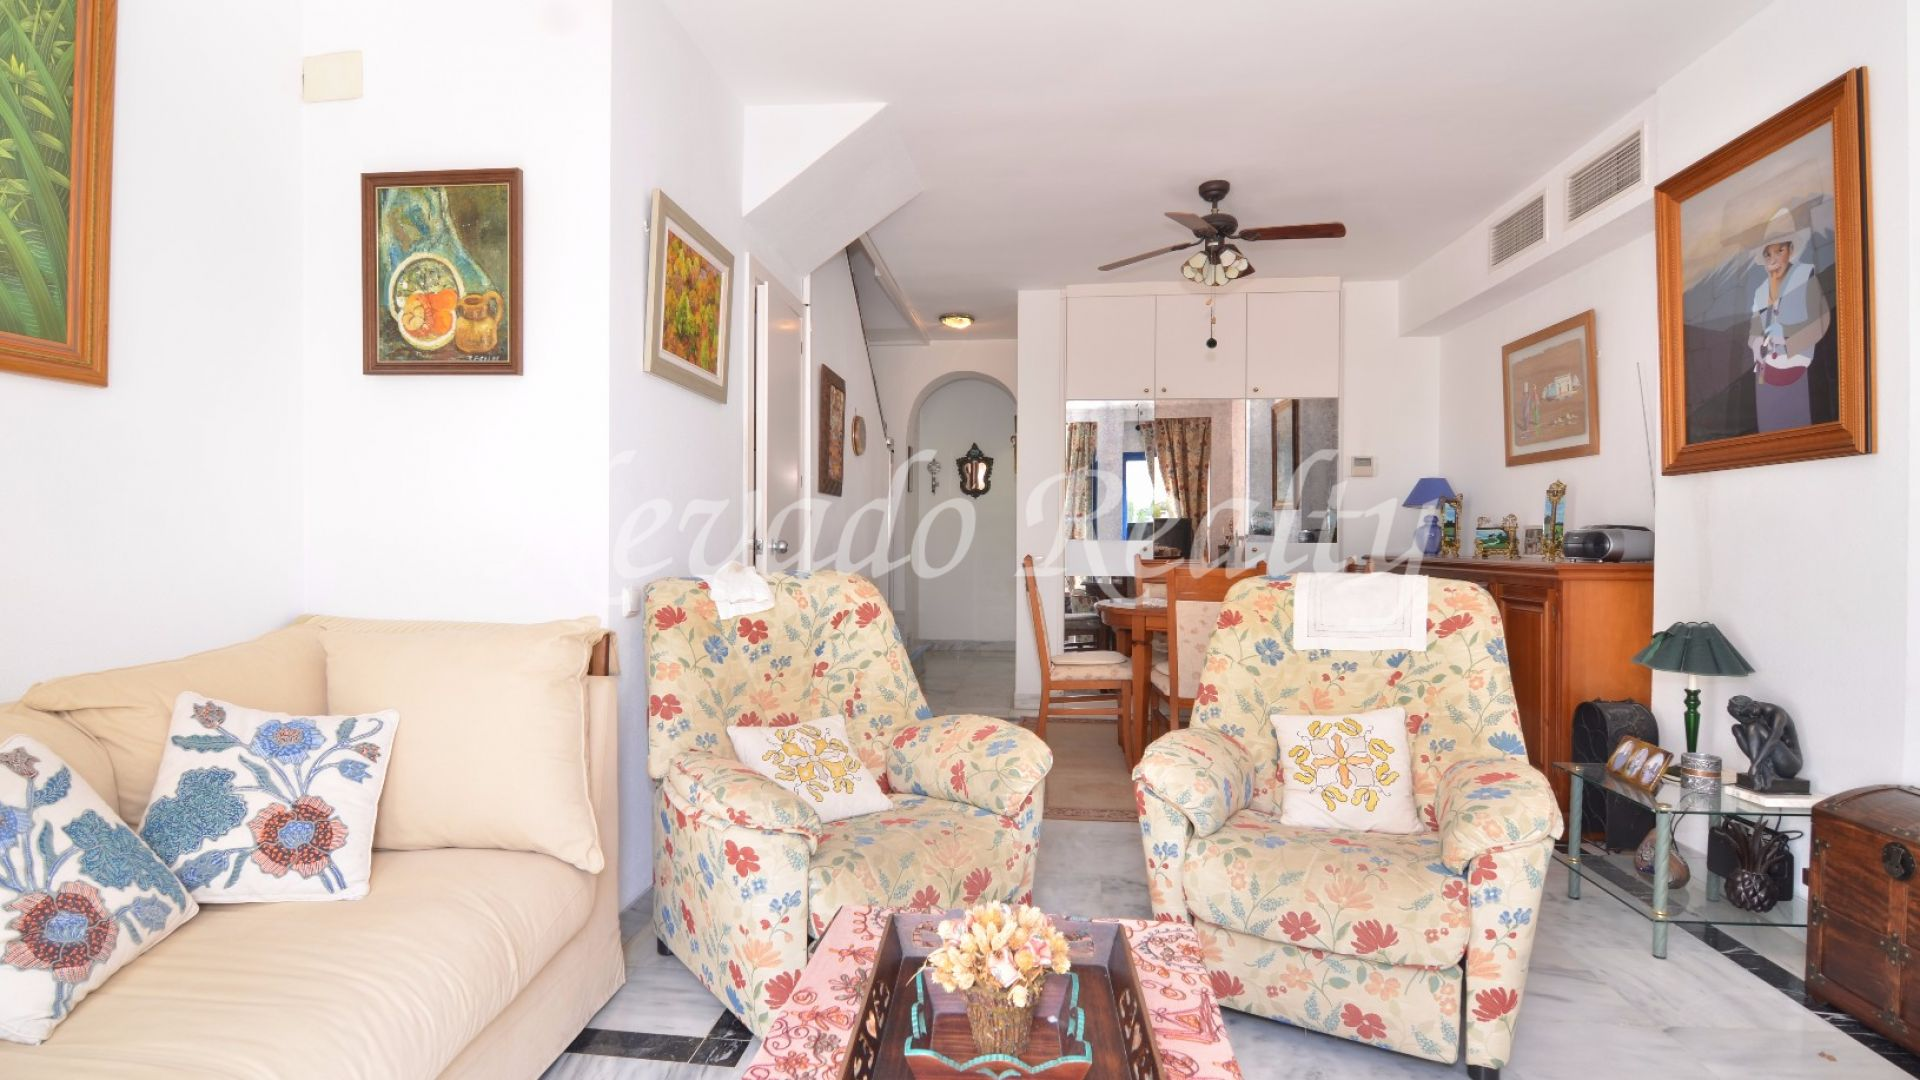 Fantastic apartment just 50 meters away from the beach, Marbella.